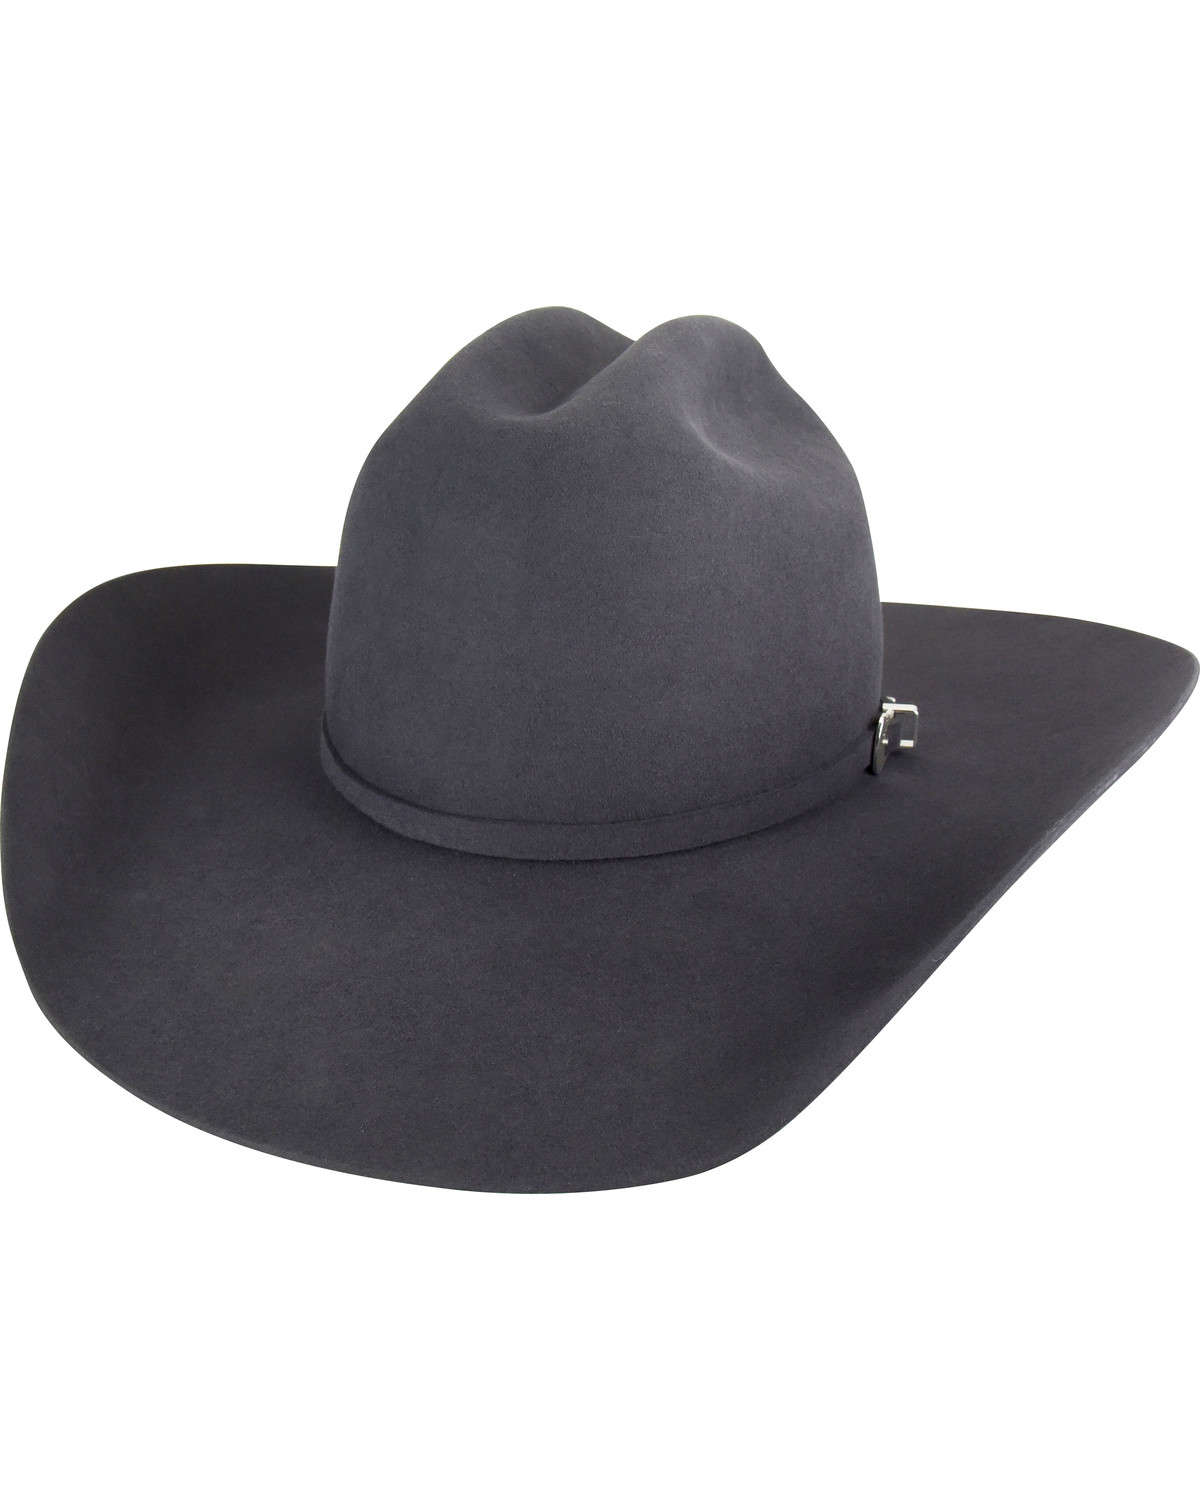 Bailey Men s Steel Pro 5X Wool Felt Cowboy Hat  52e0e2d5833